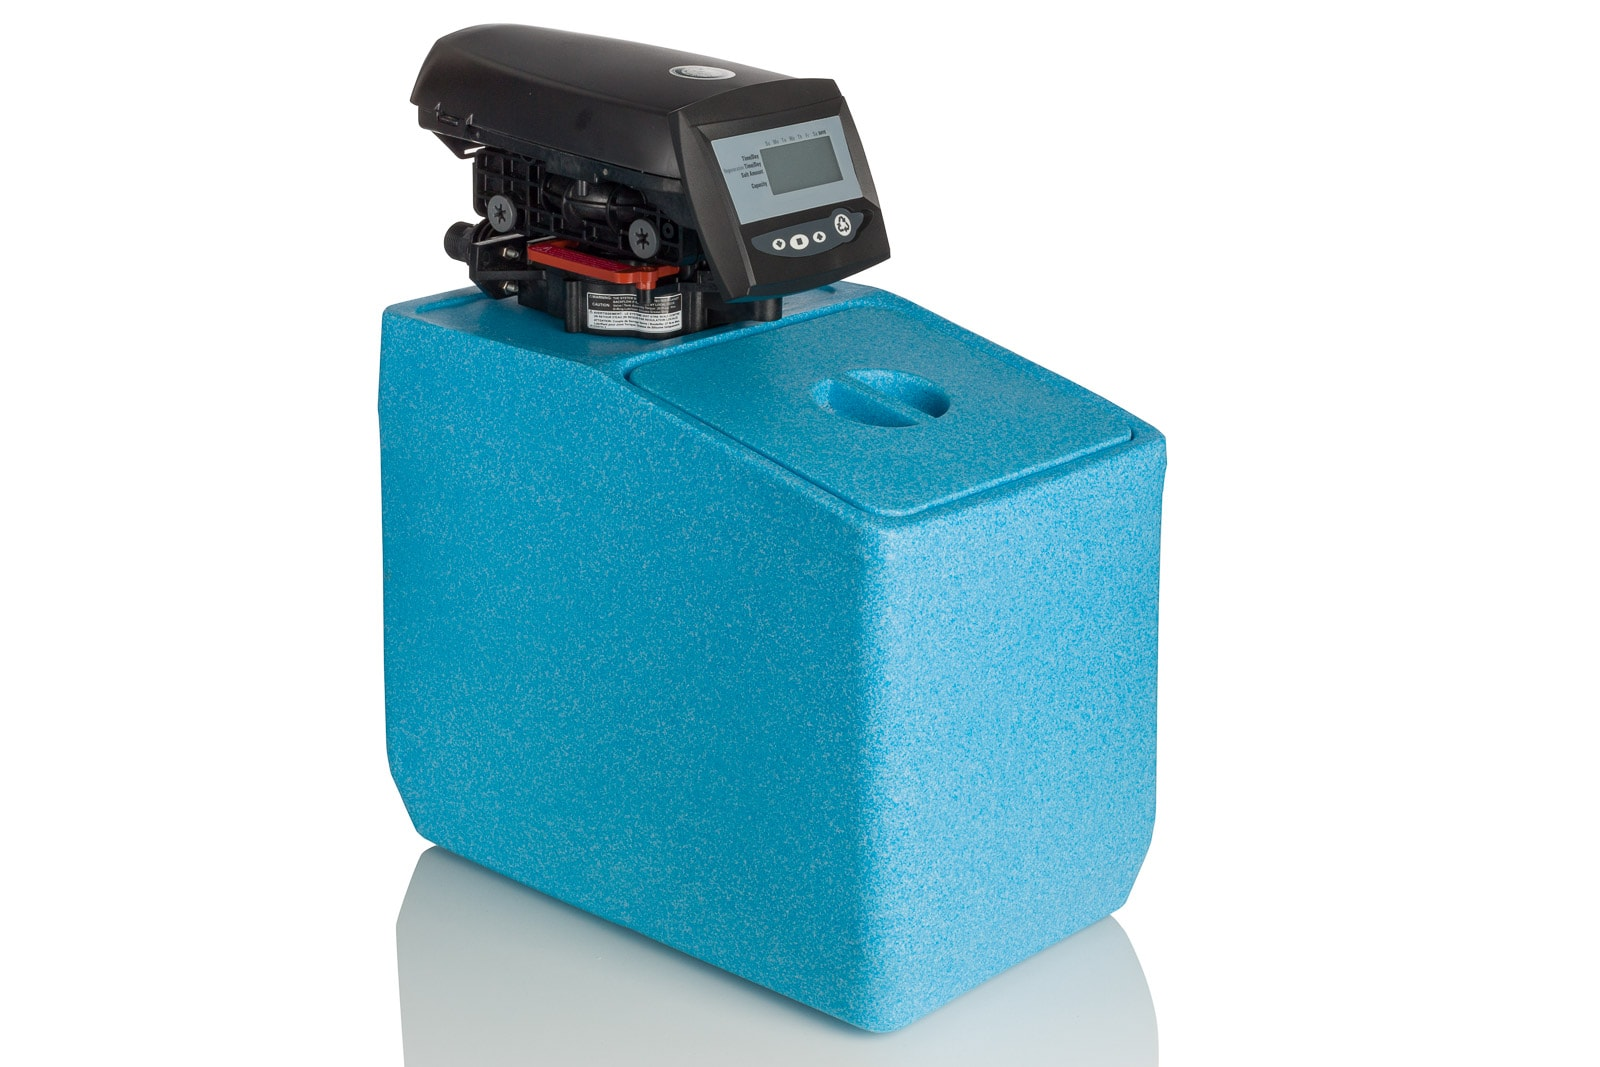 blue water softener tank with timer on white background